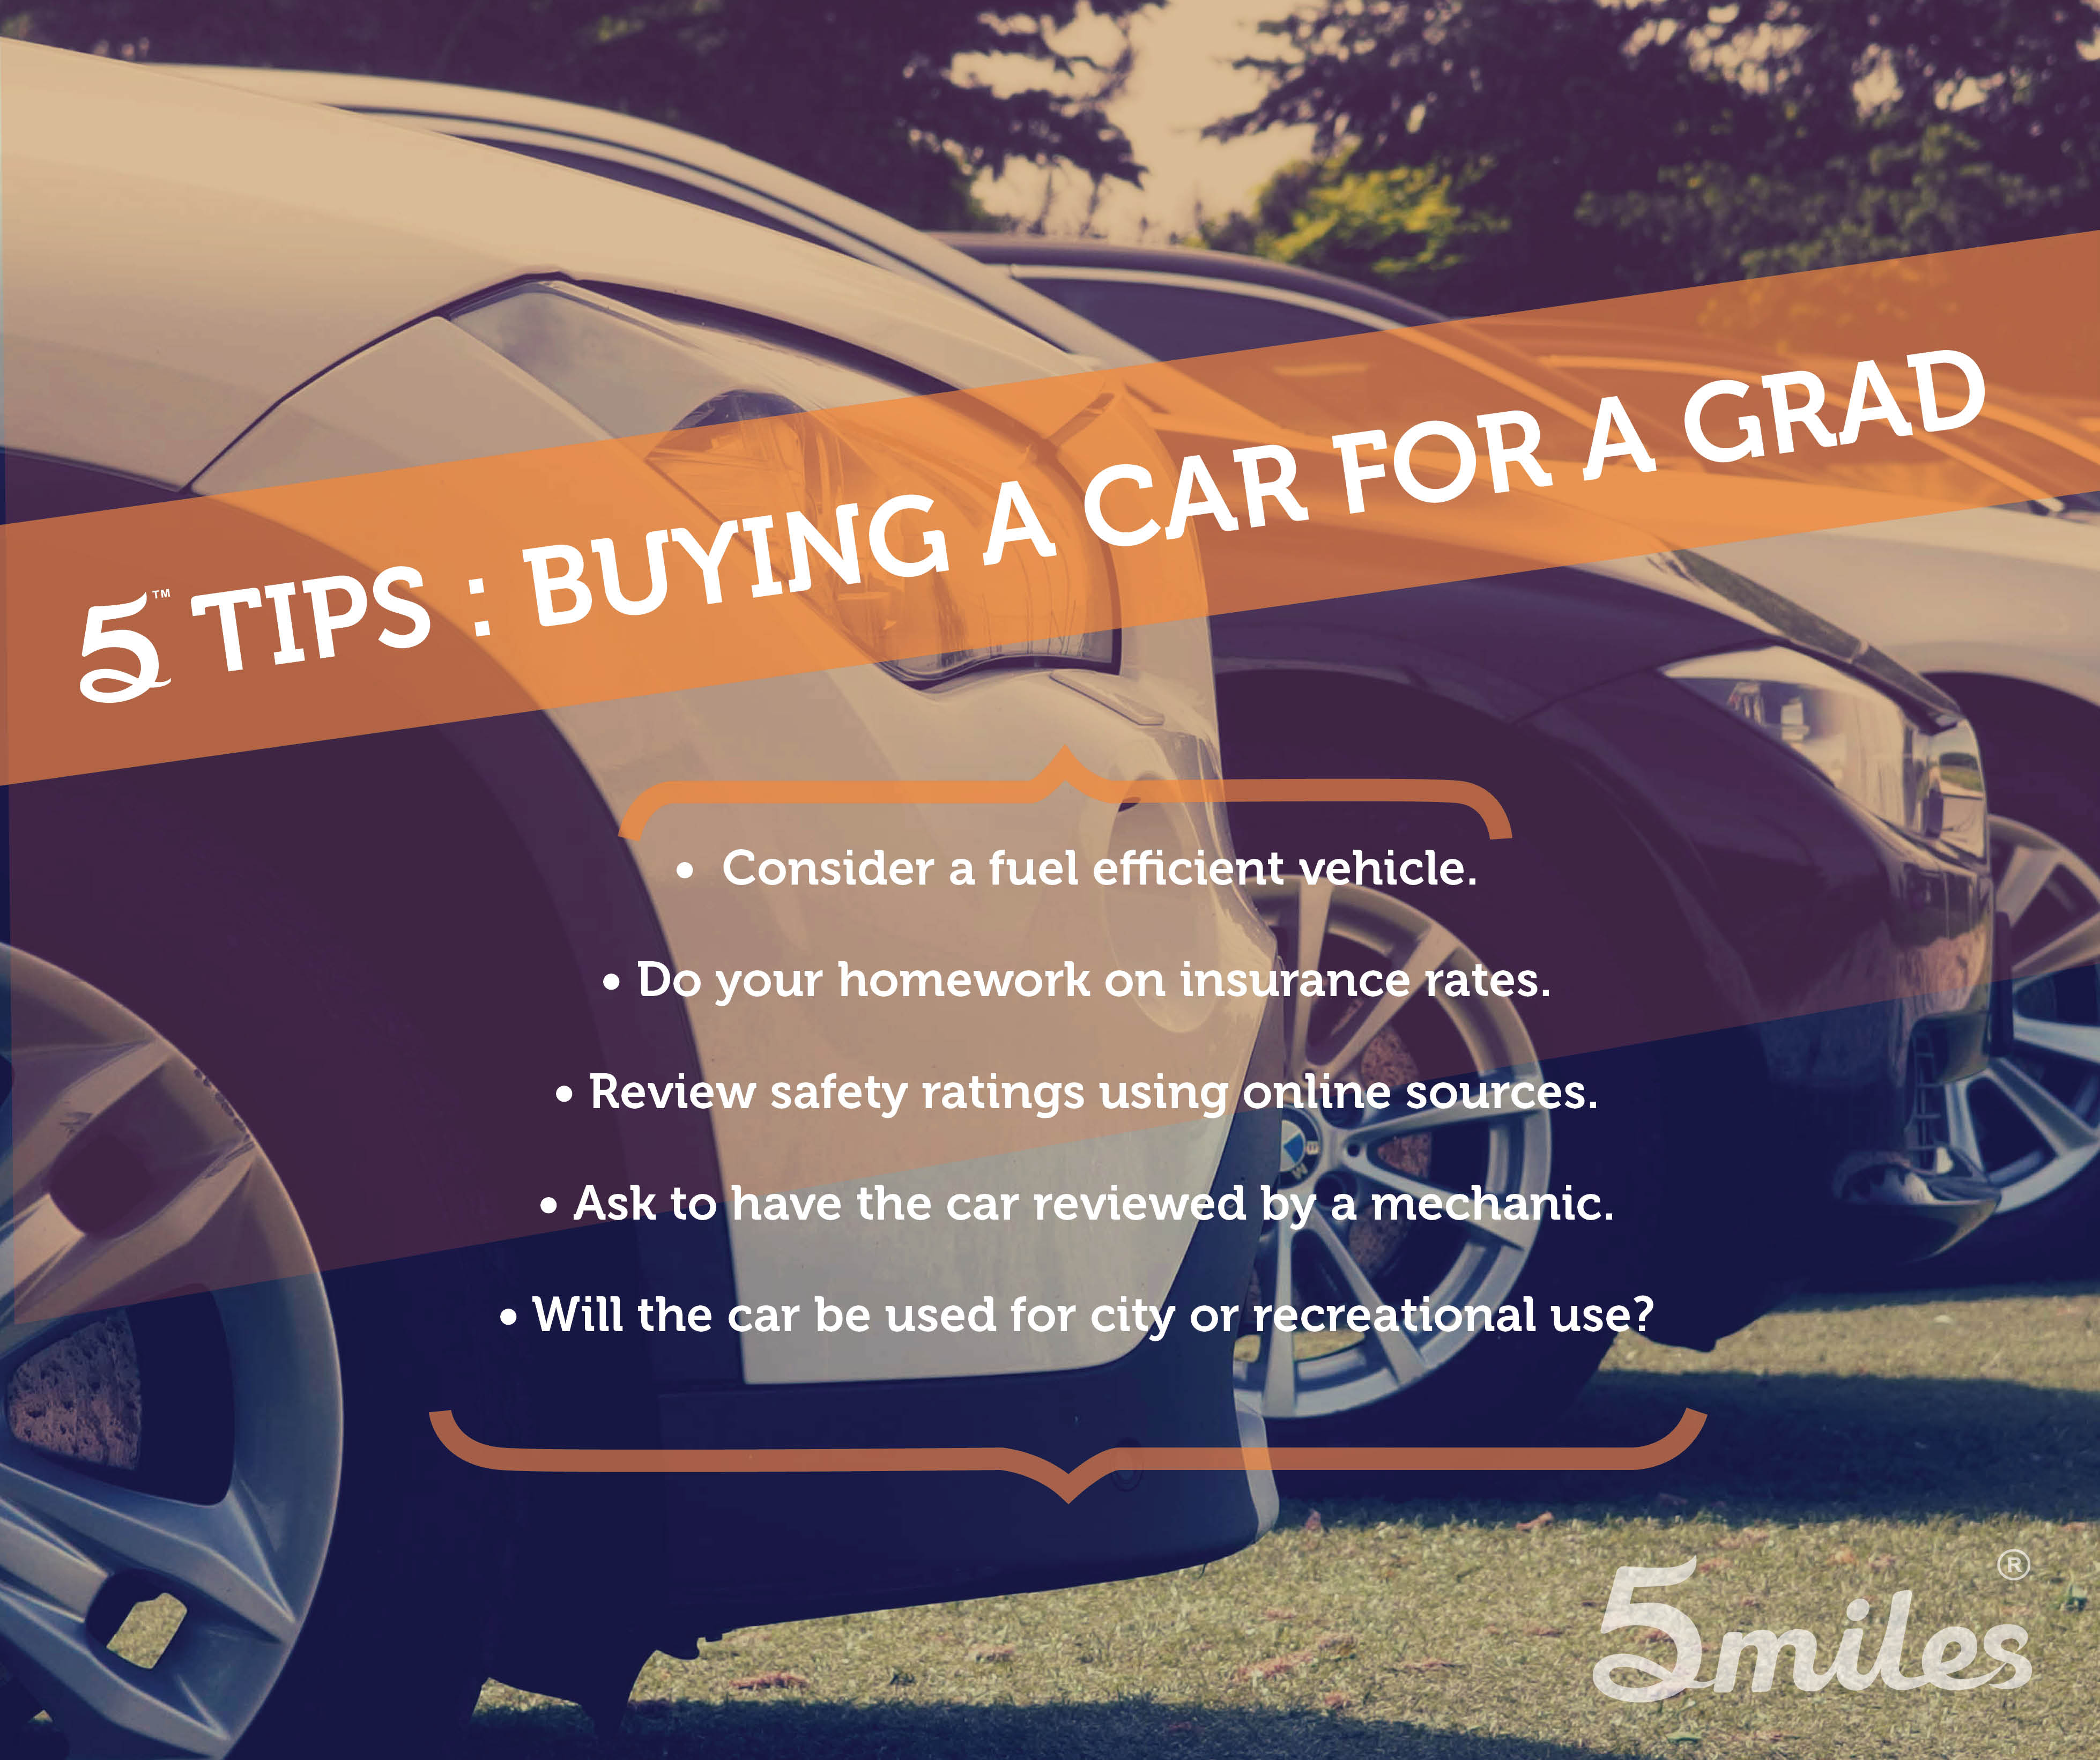 Tips for graduate car buying